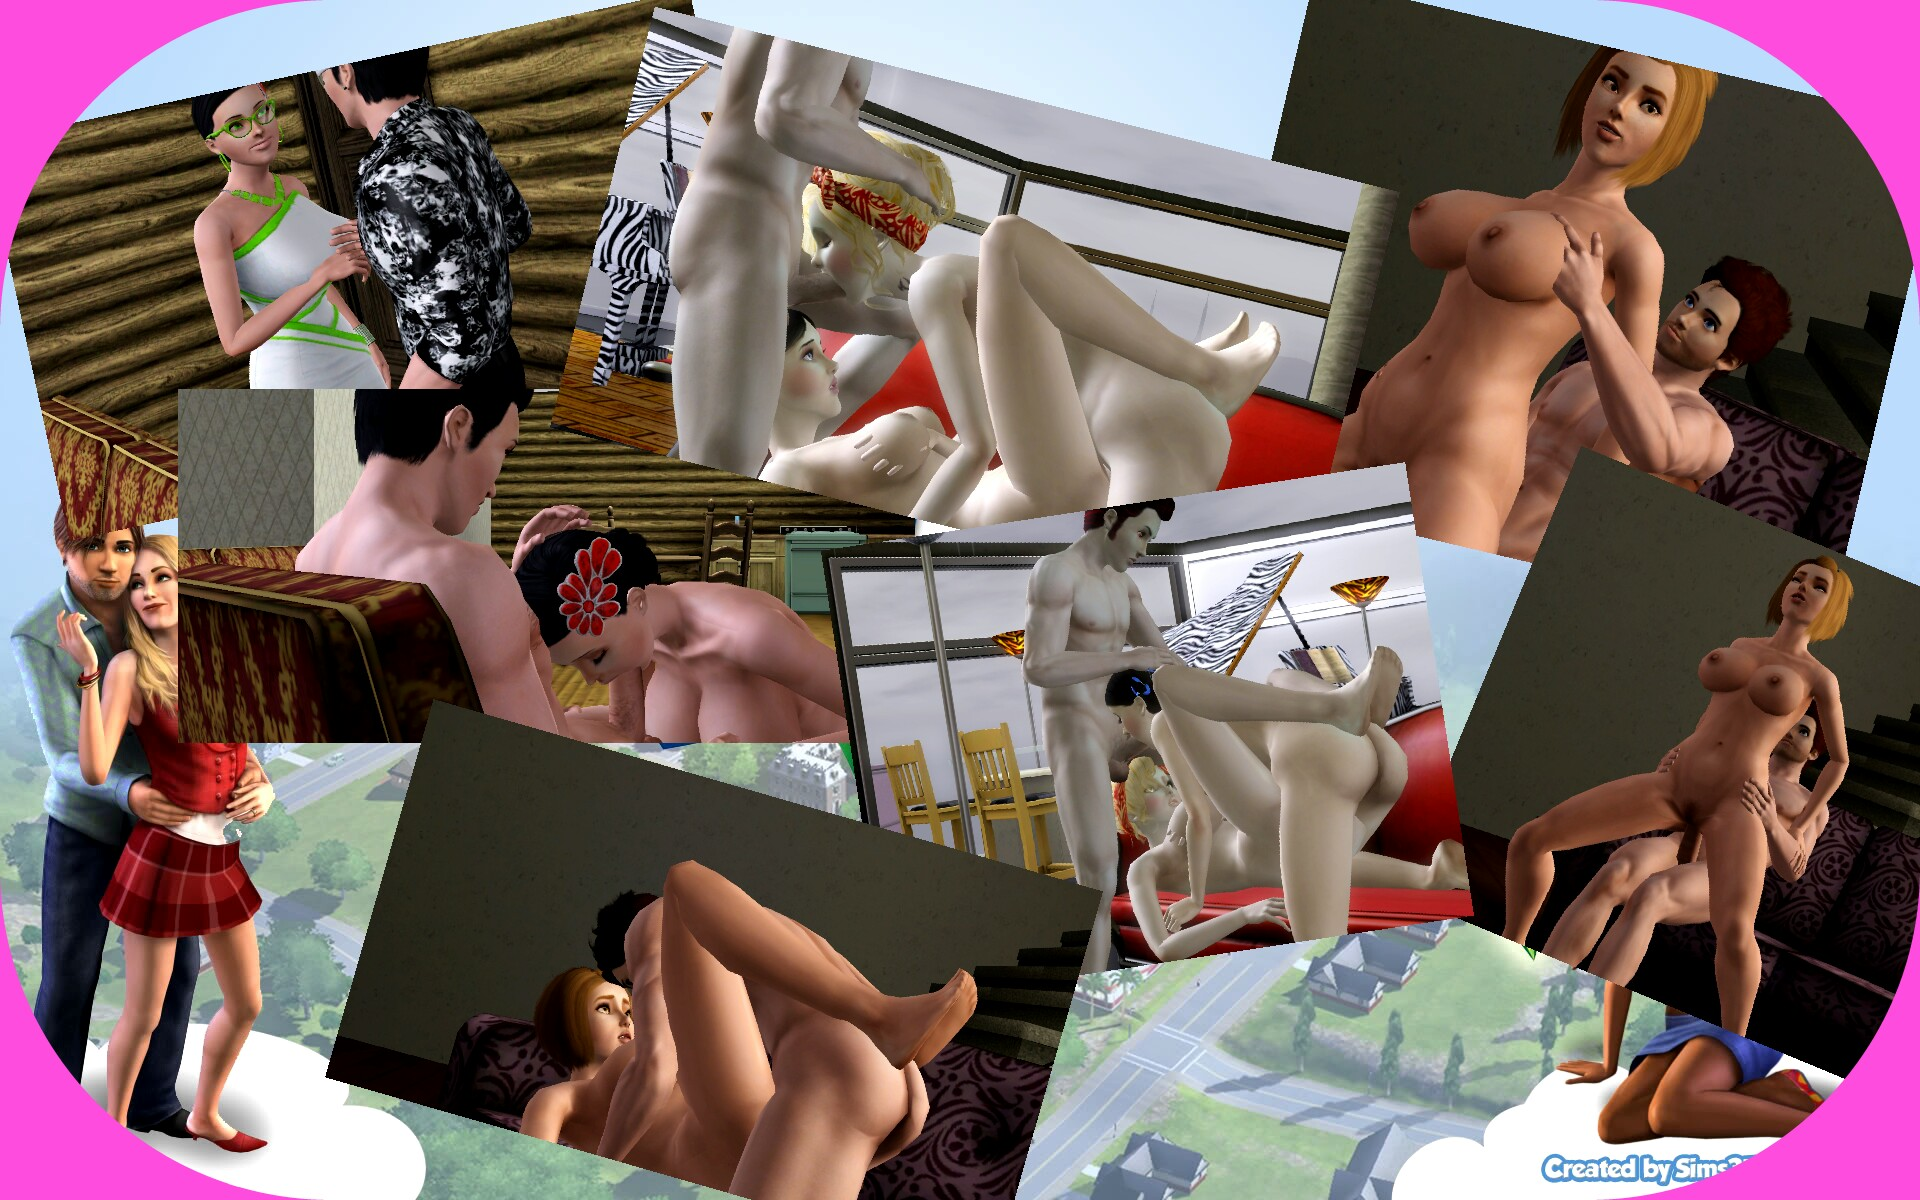 The sims 3 sex porn galleries